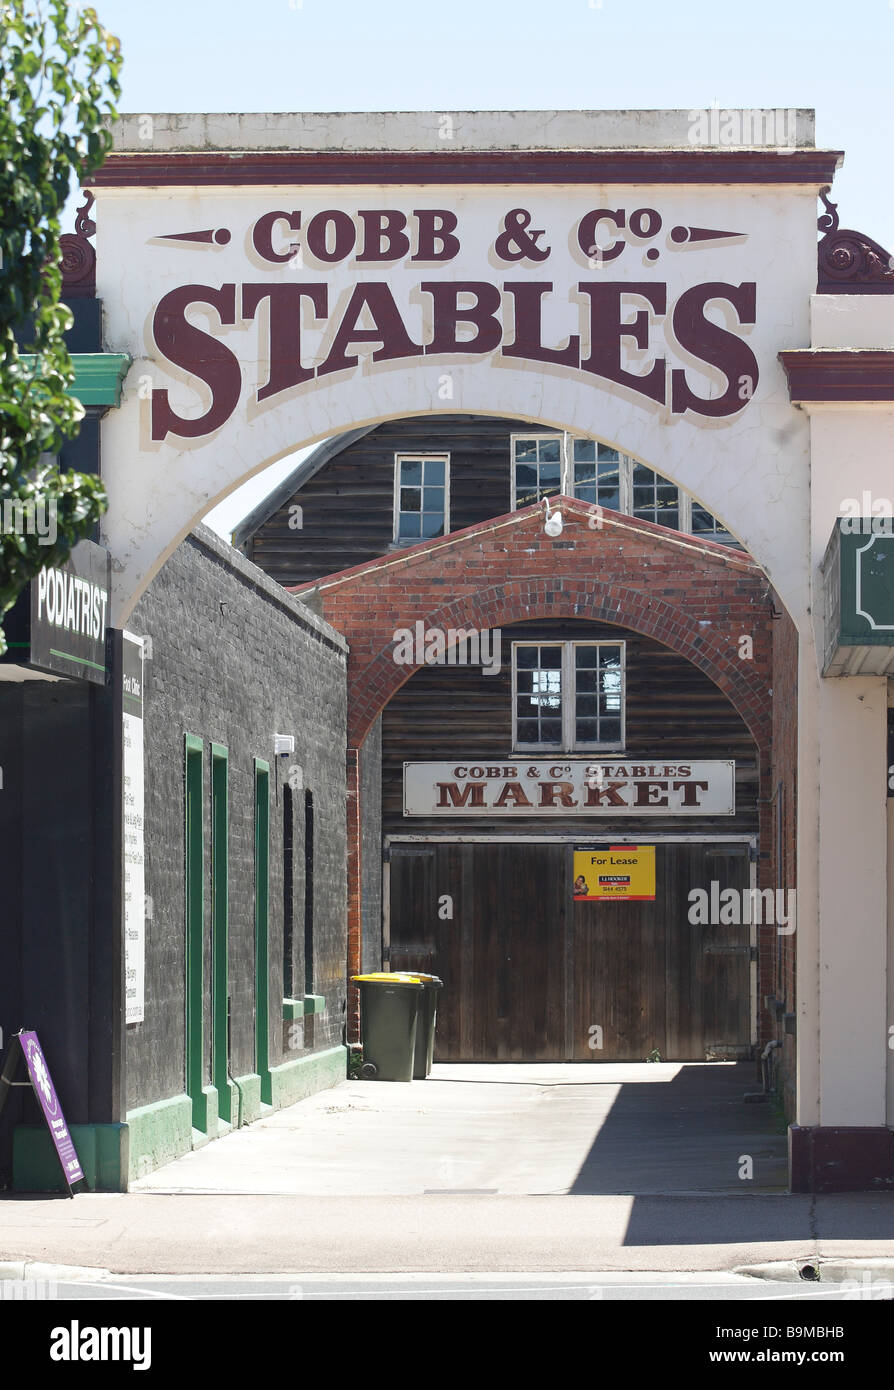 Entrance to the former Cobb & Co Stables in Sale, Victoria,Australia - Stock Image